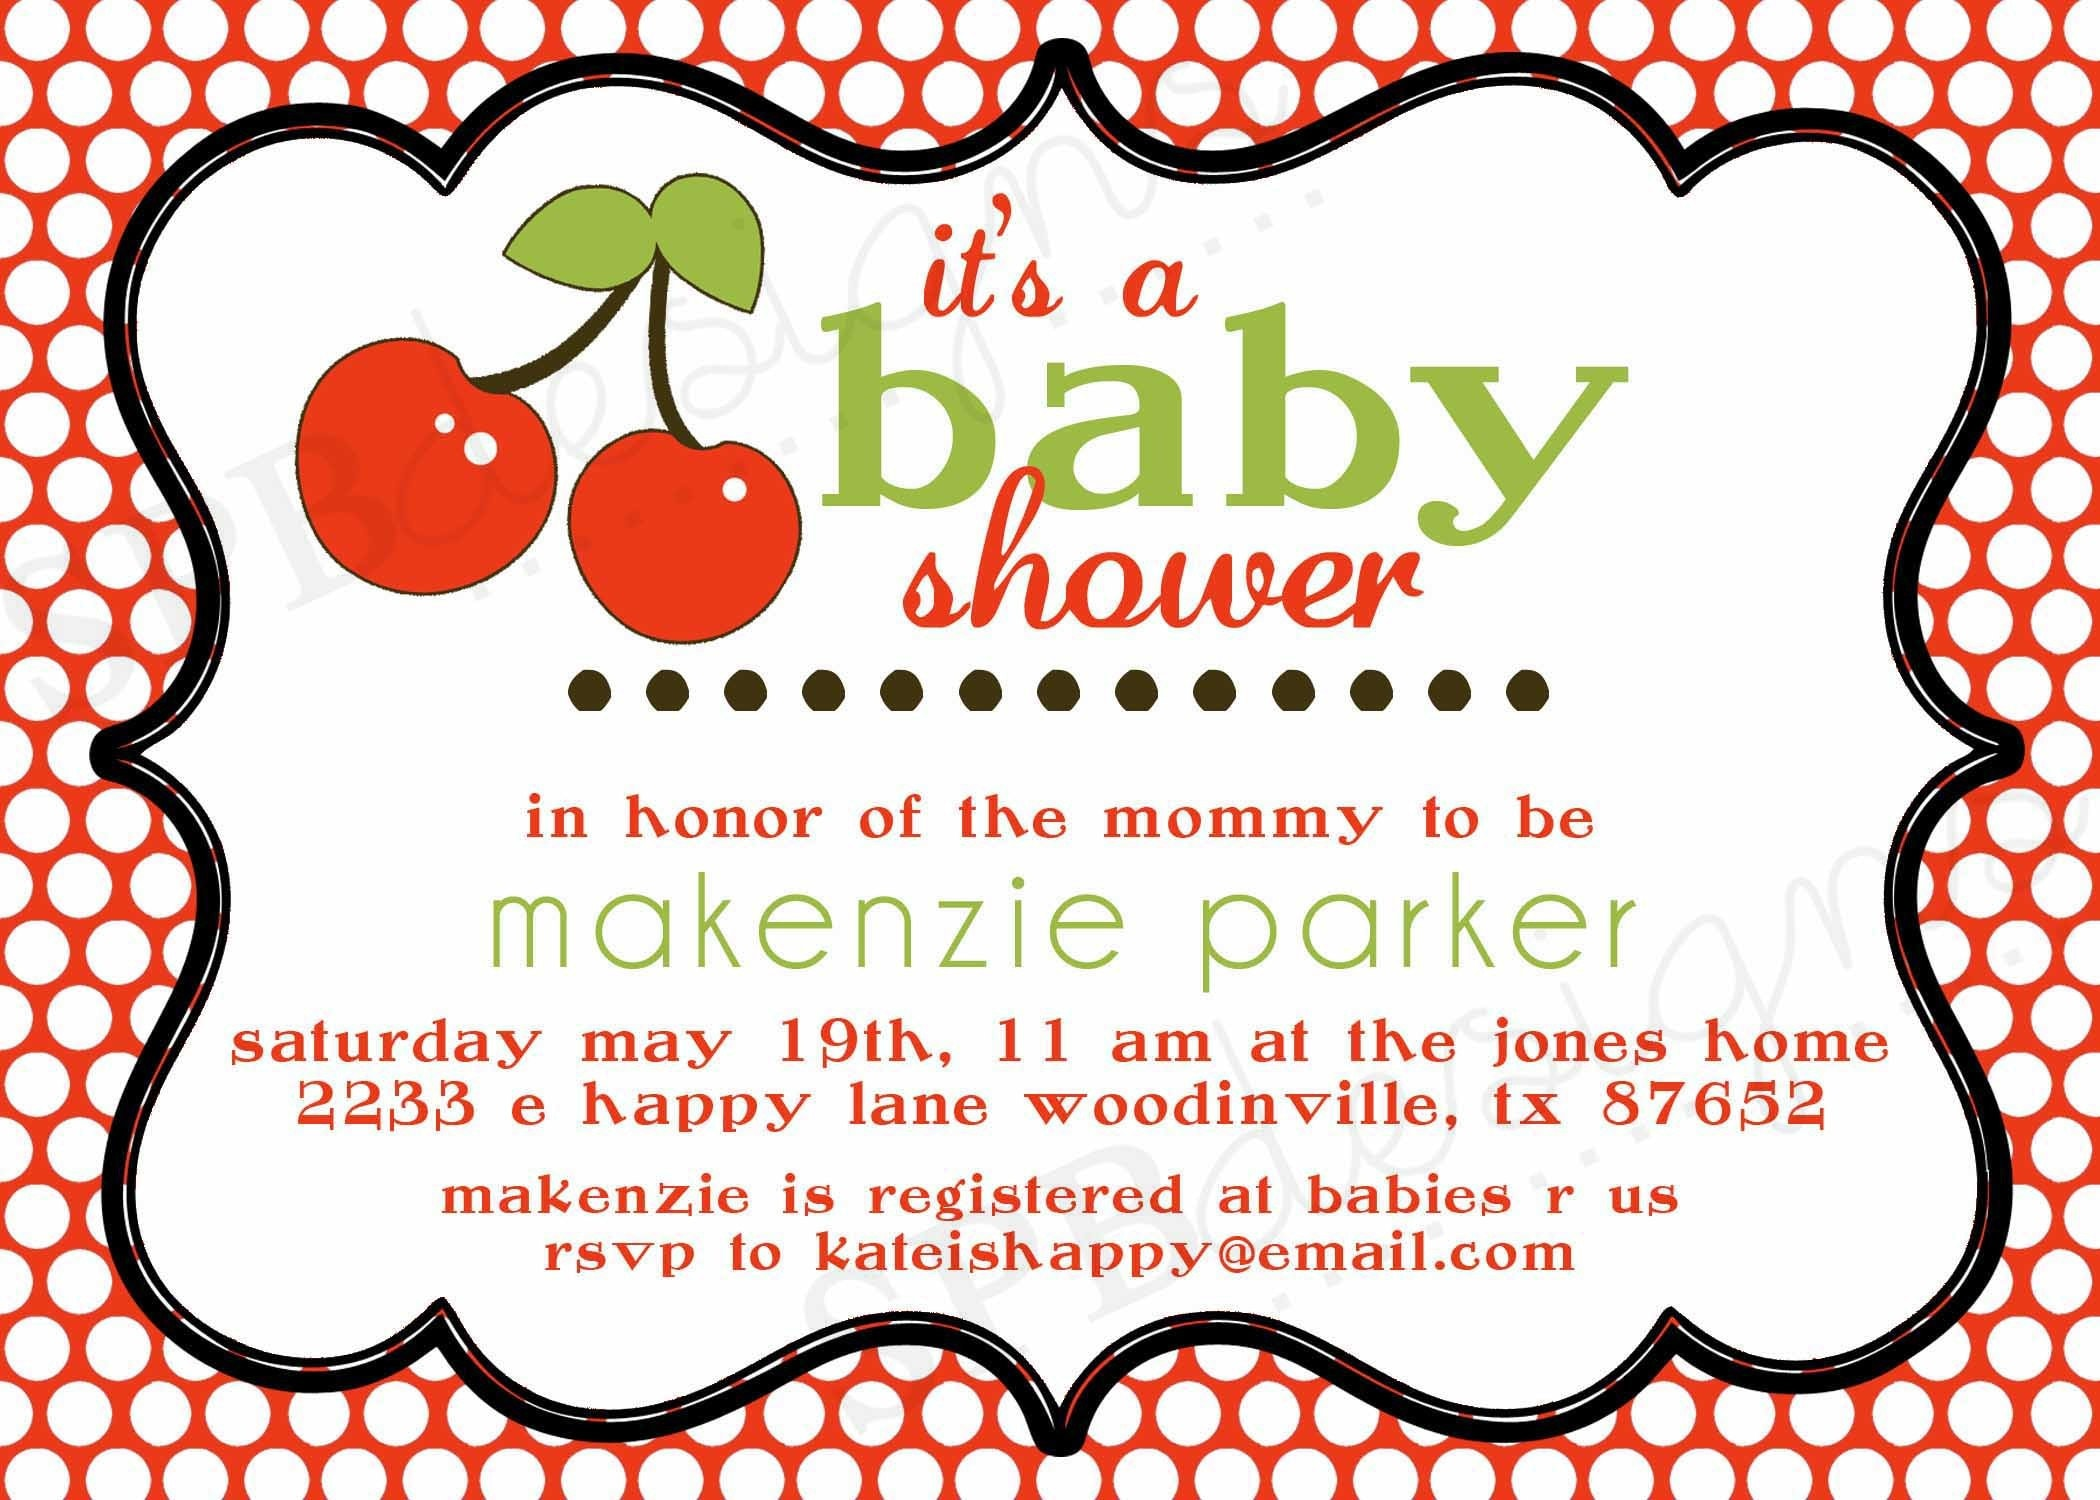 Baby Shower Invitation Wording 2100 x 1500